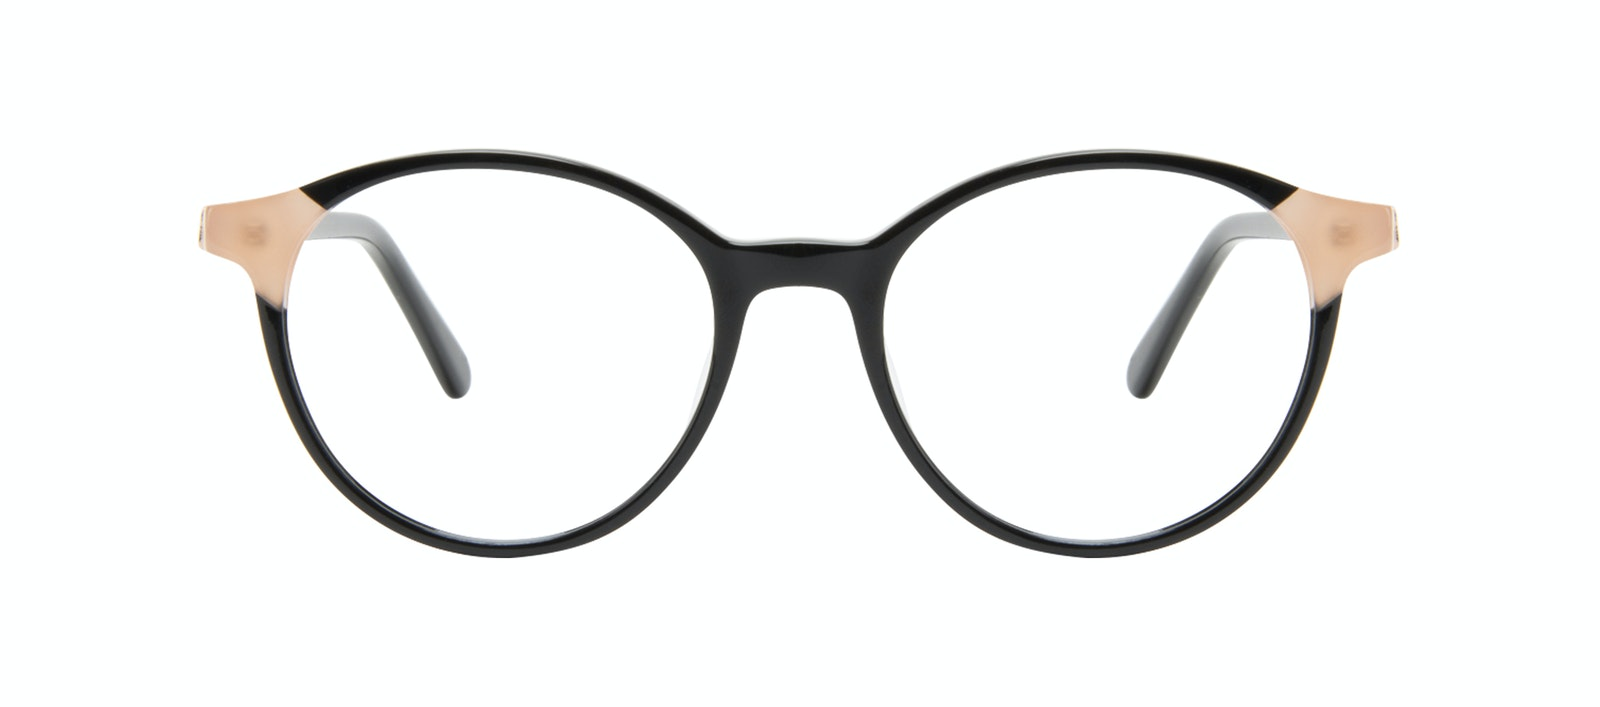 Affordable Fashion Glasses Round Eyeglasses Women Vivid Black Ivory Front